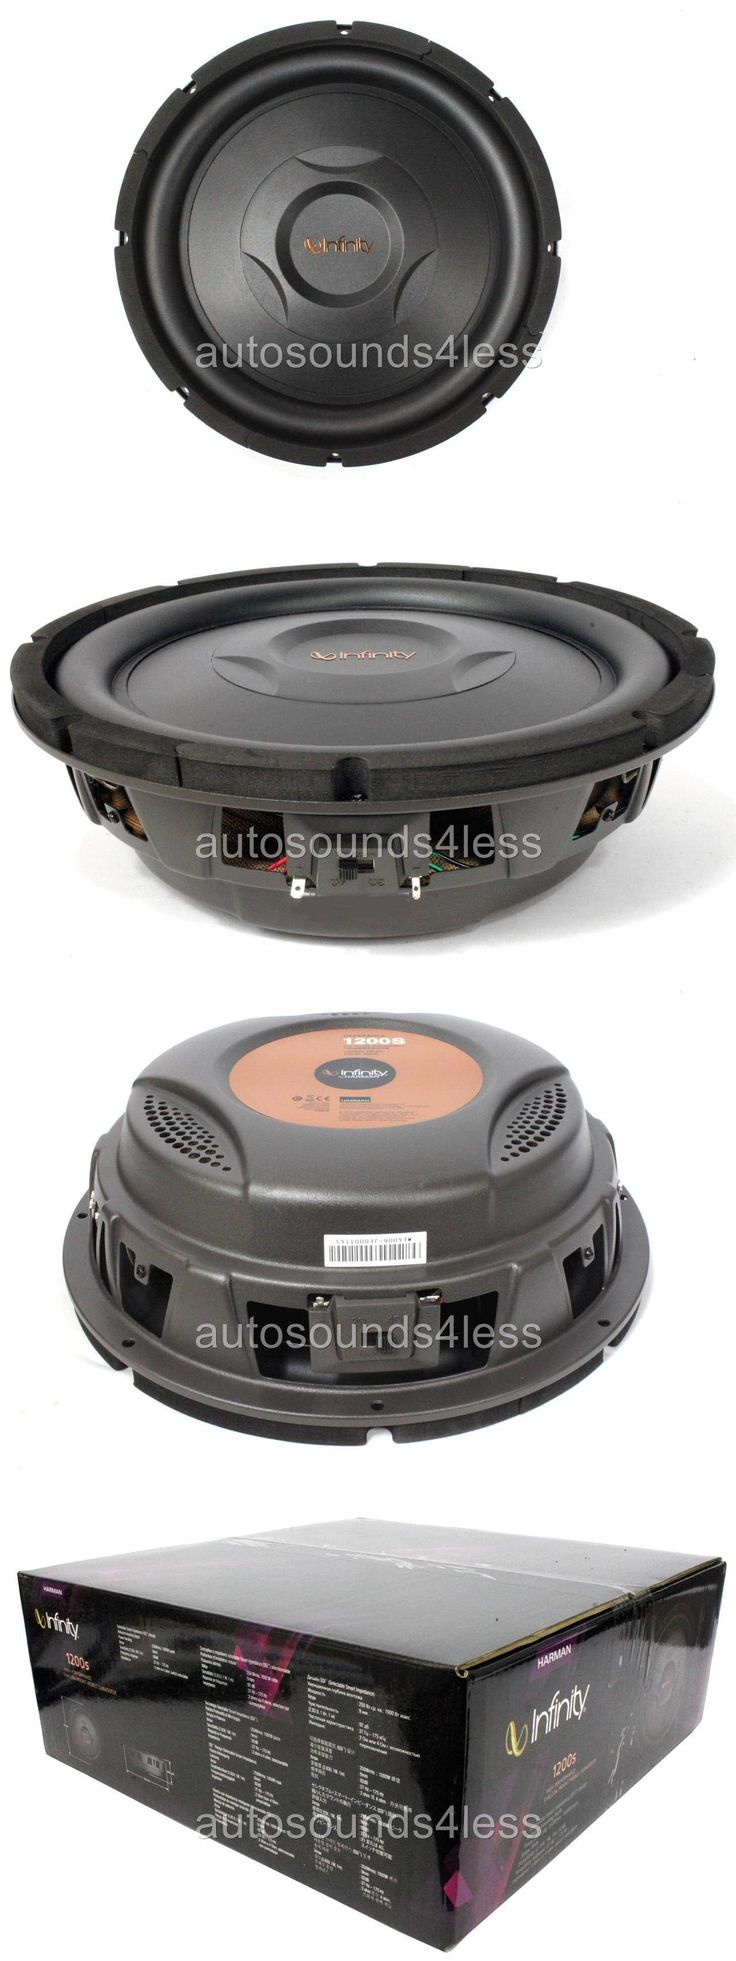 Car Subwoofers: New Infinity Ref1200s 1000 Watts 12 2 Or 4 Ohm Shallow Mount Truck Subwoofer -> BUY IT NOW ONLY: $95.49 on eBay!